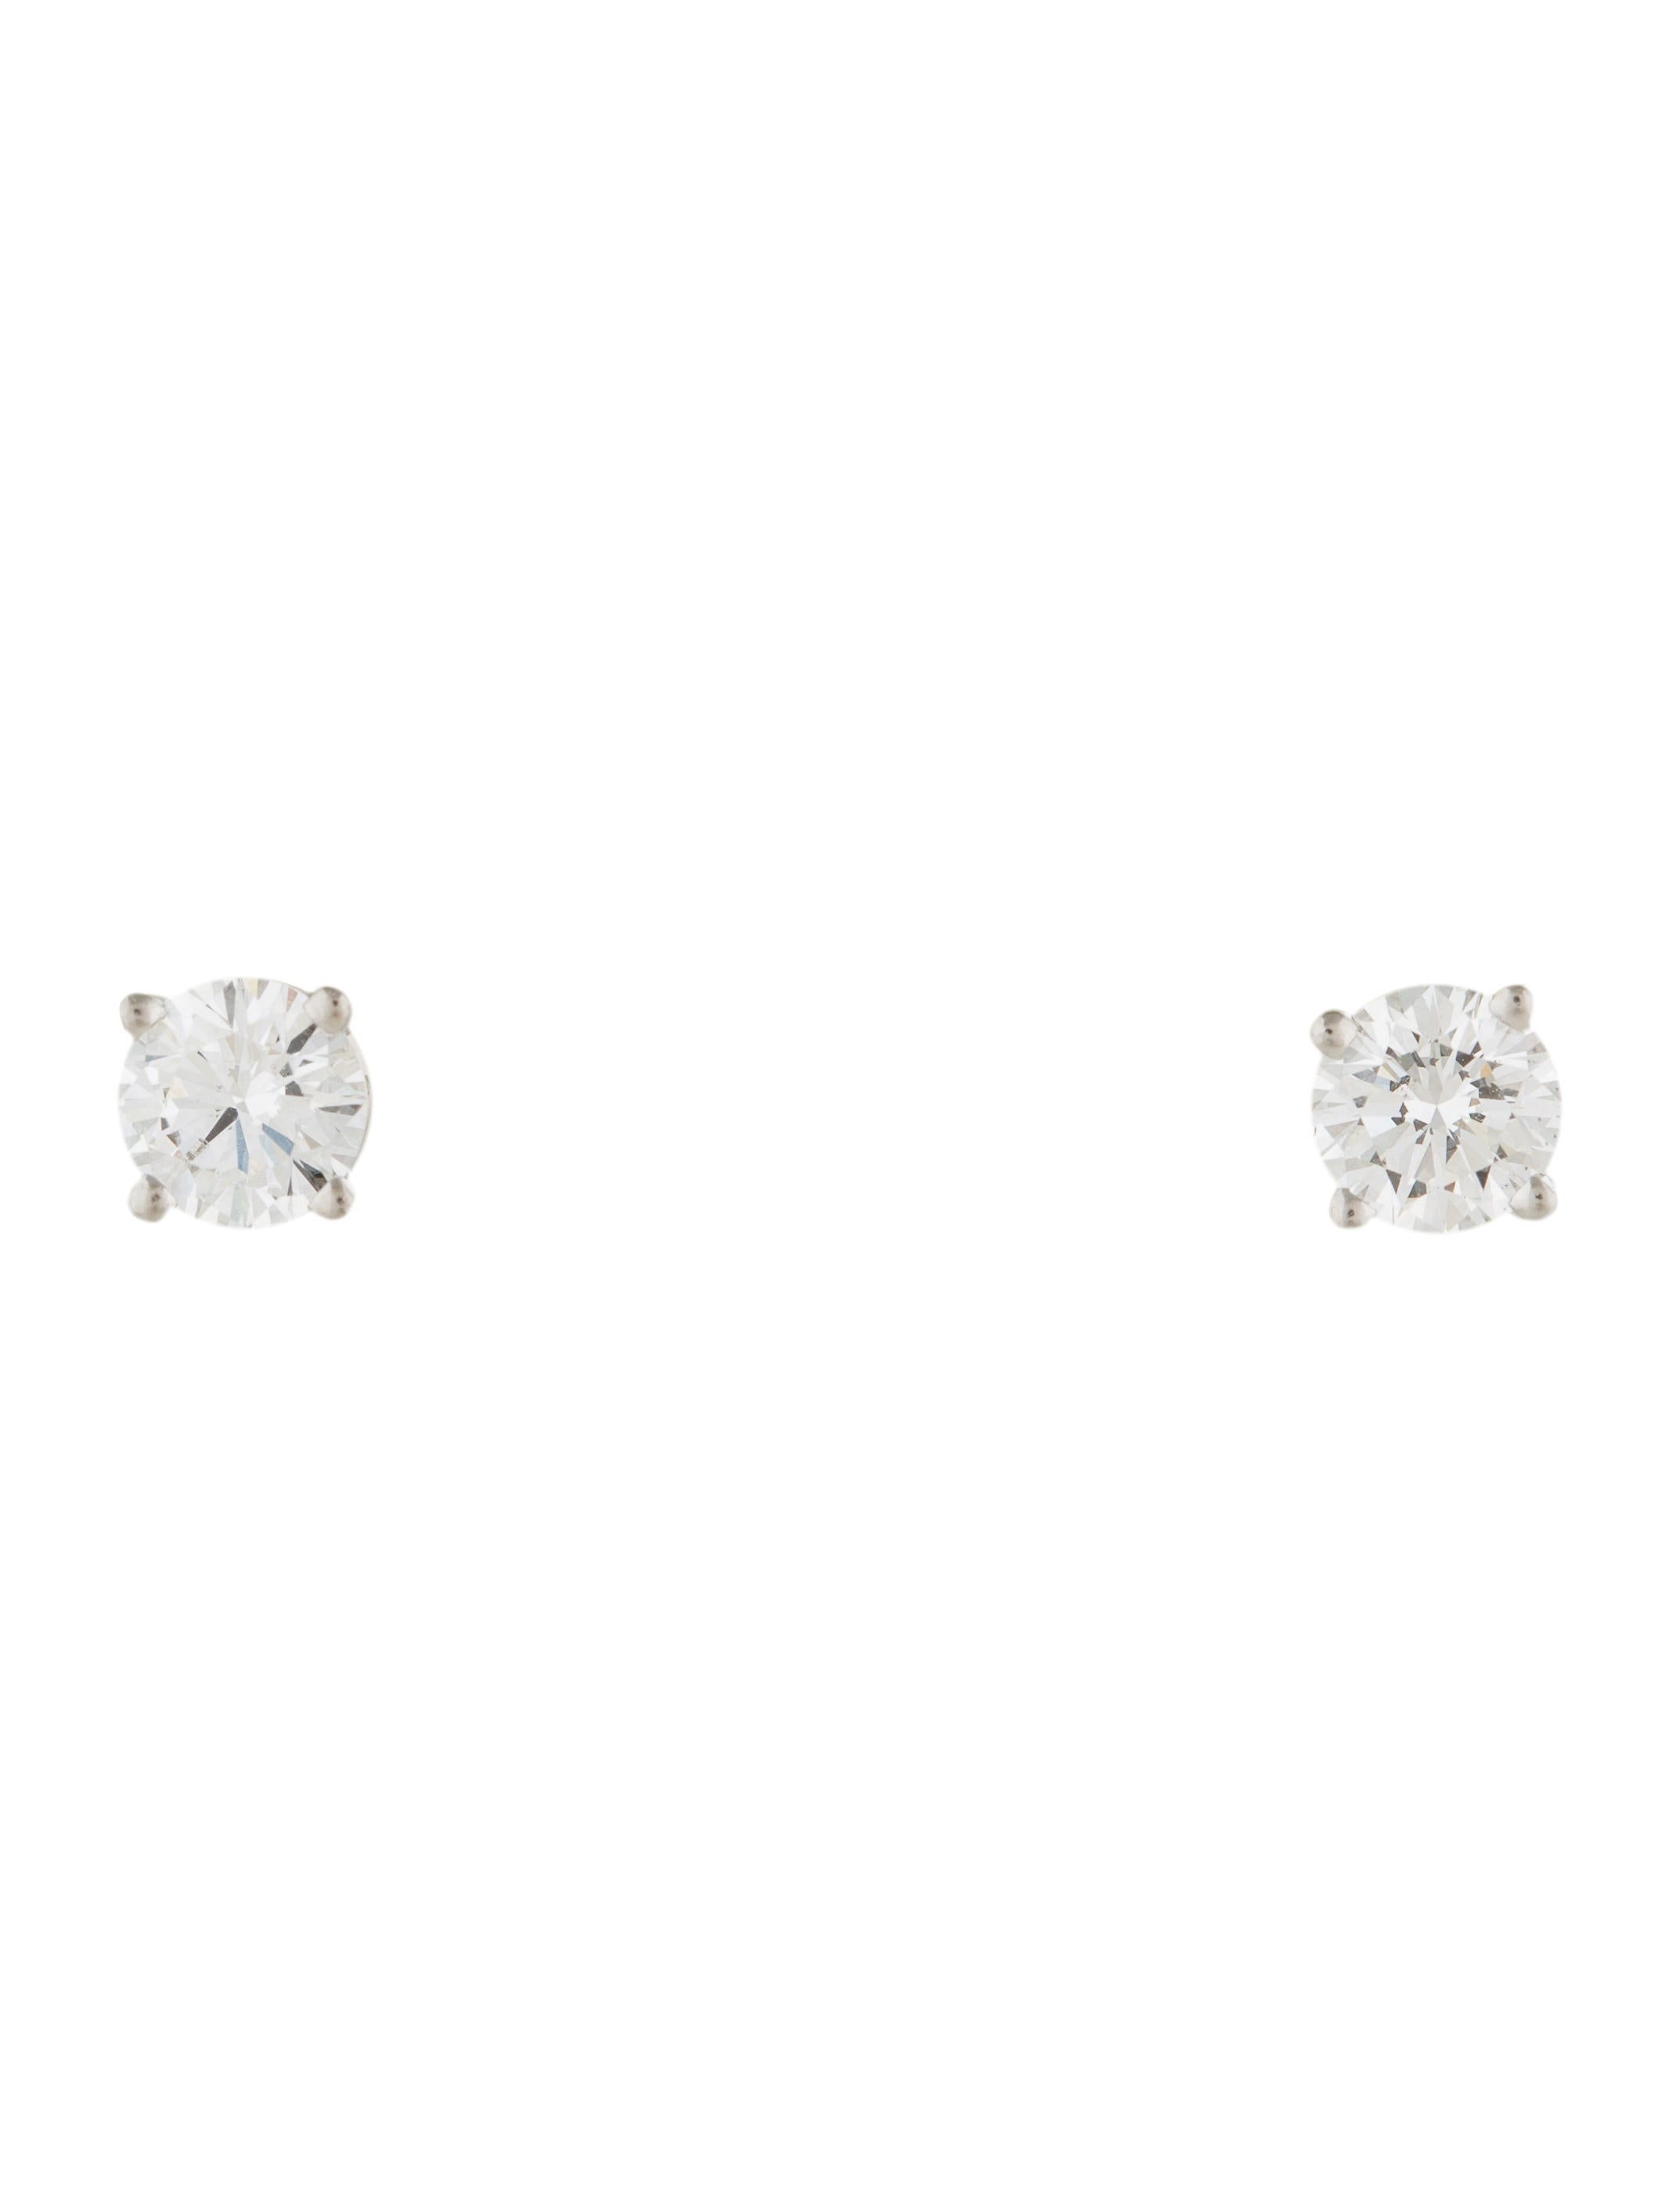 john round stud earrings mogul diamond at gold brilliant lewis solitaire white